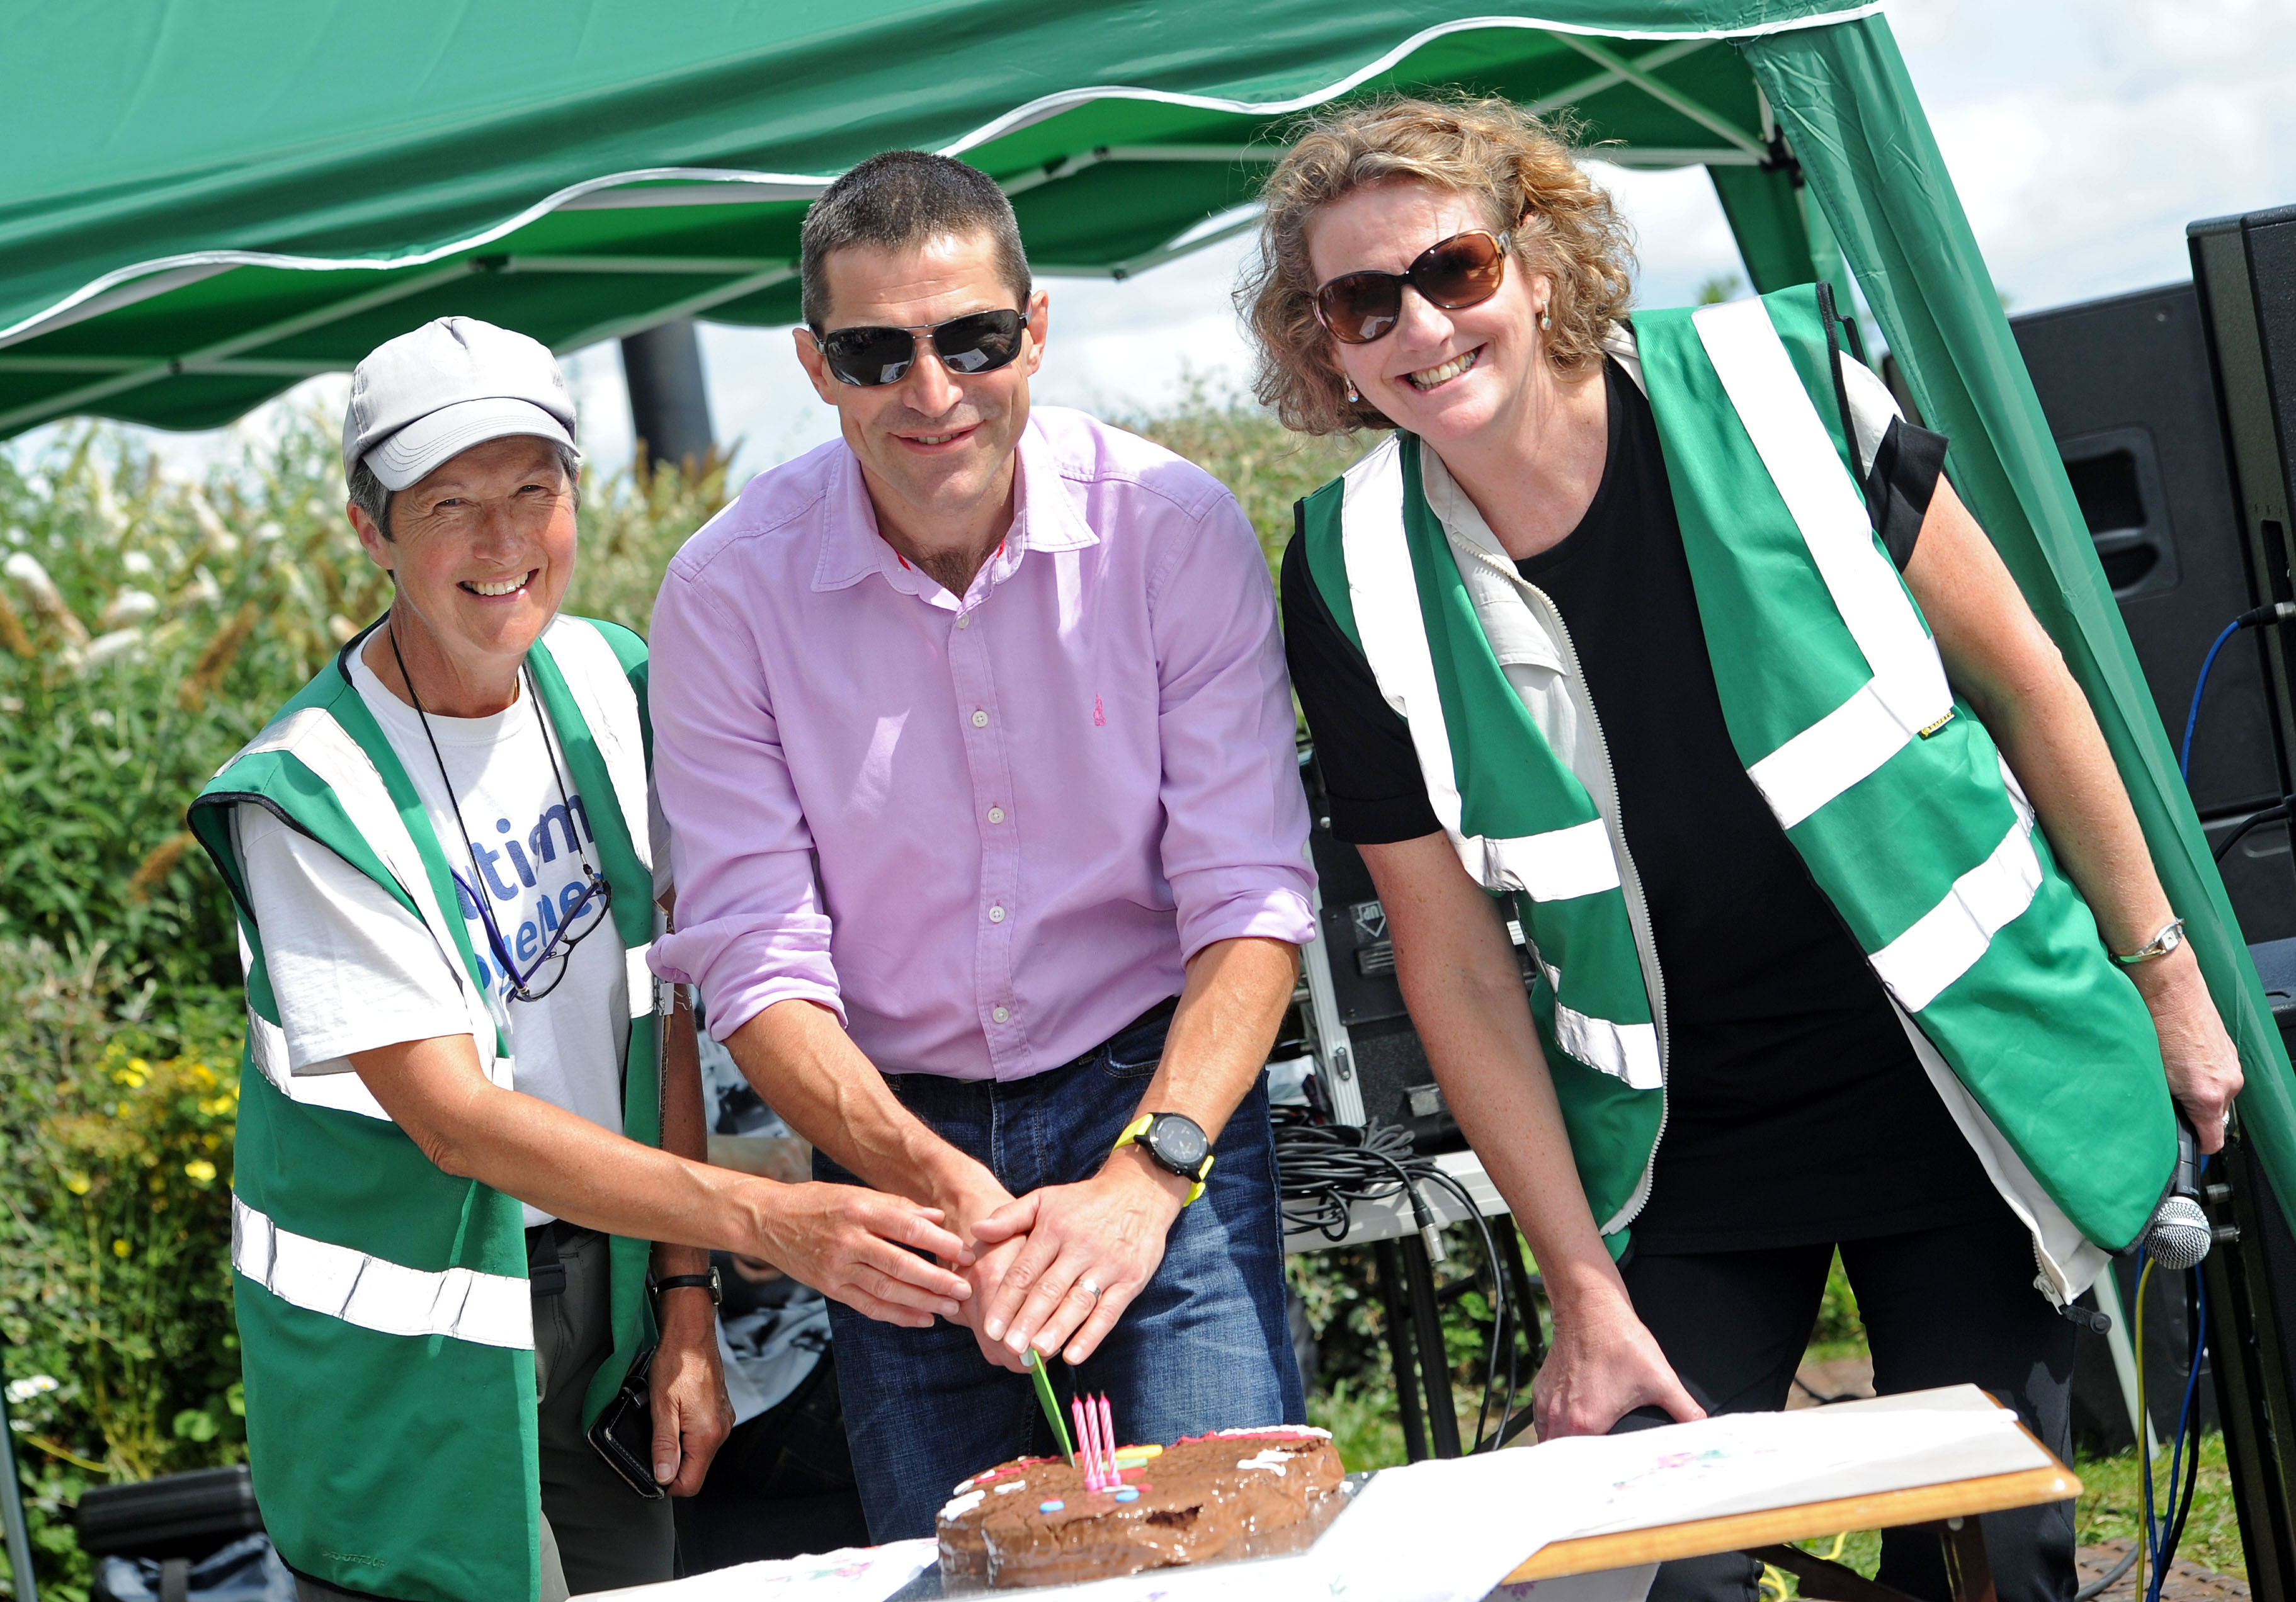 Park ranger Anne Litherland, Autism Together CEO Robin Bush and Alison Kelly from the Friends of Port Sunlight River Park cut a cake to celebrate the park's third birthday.